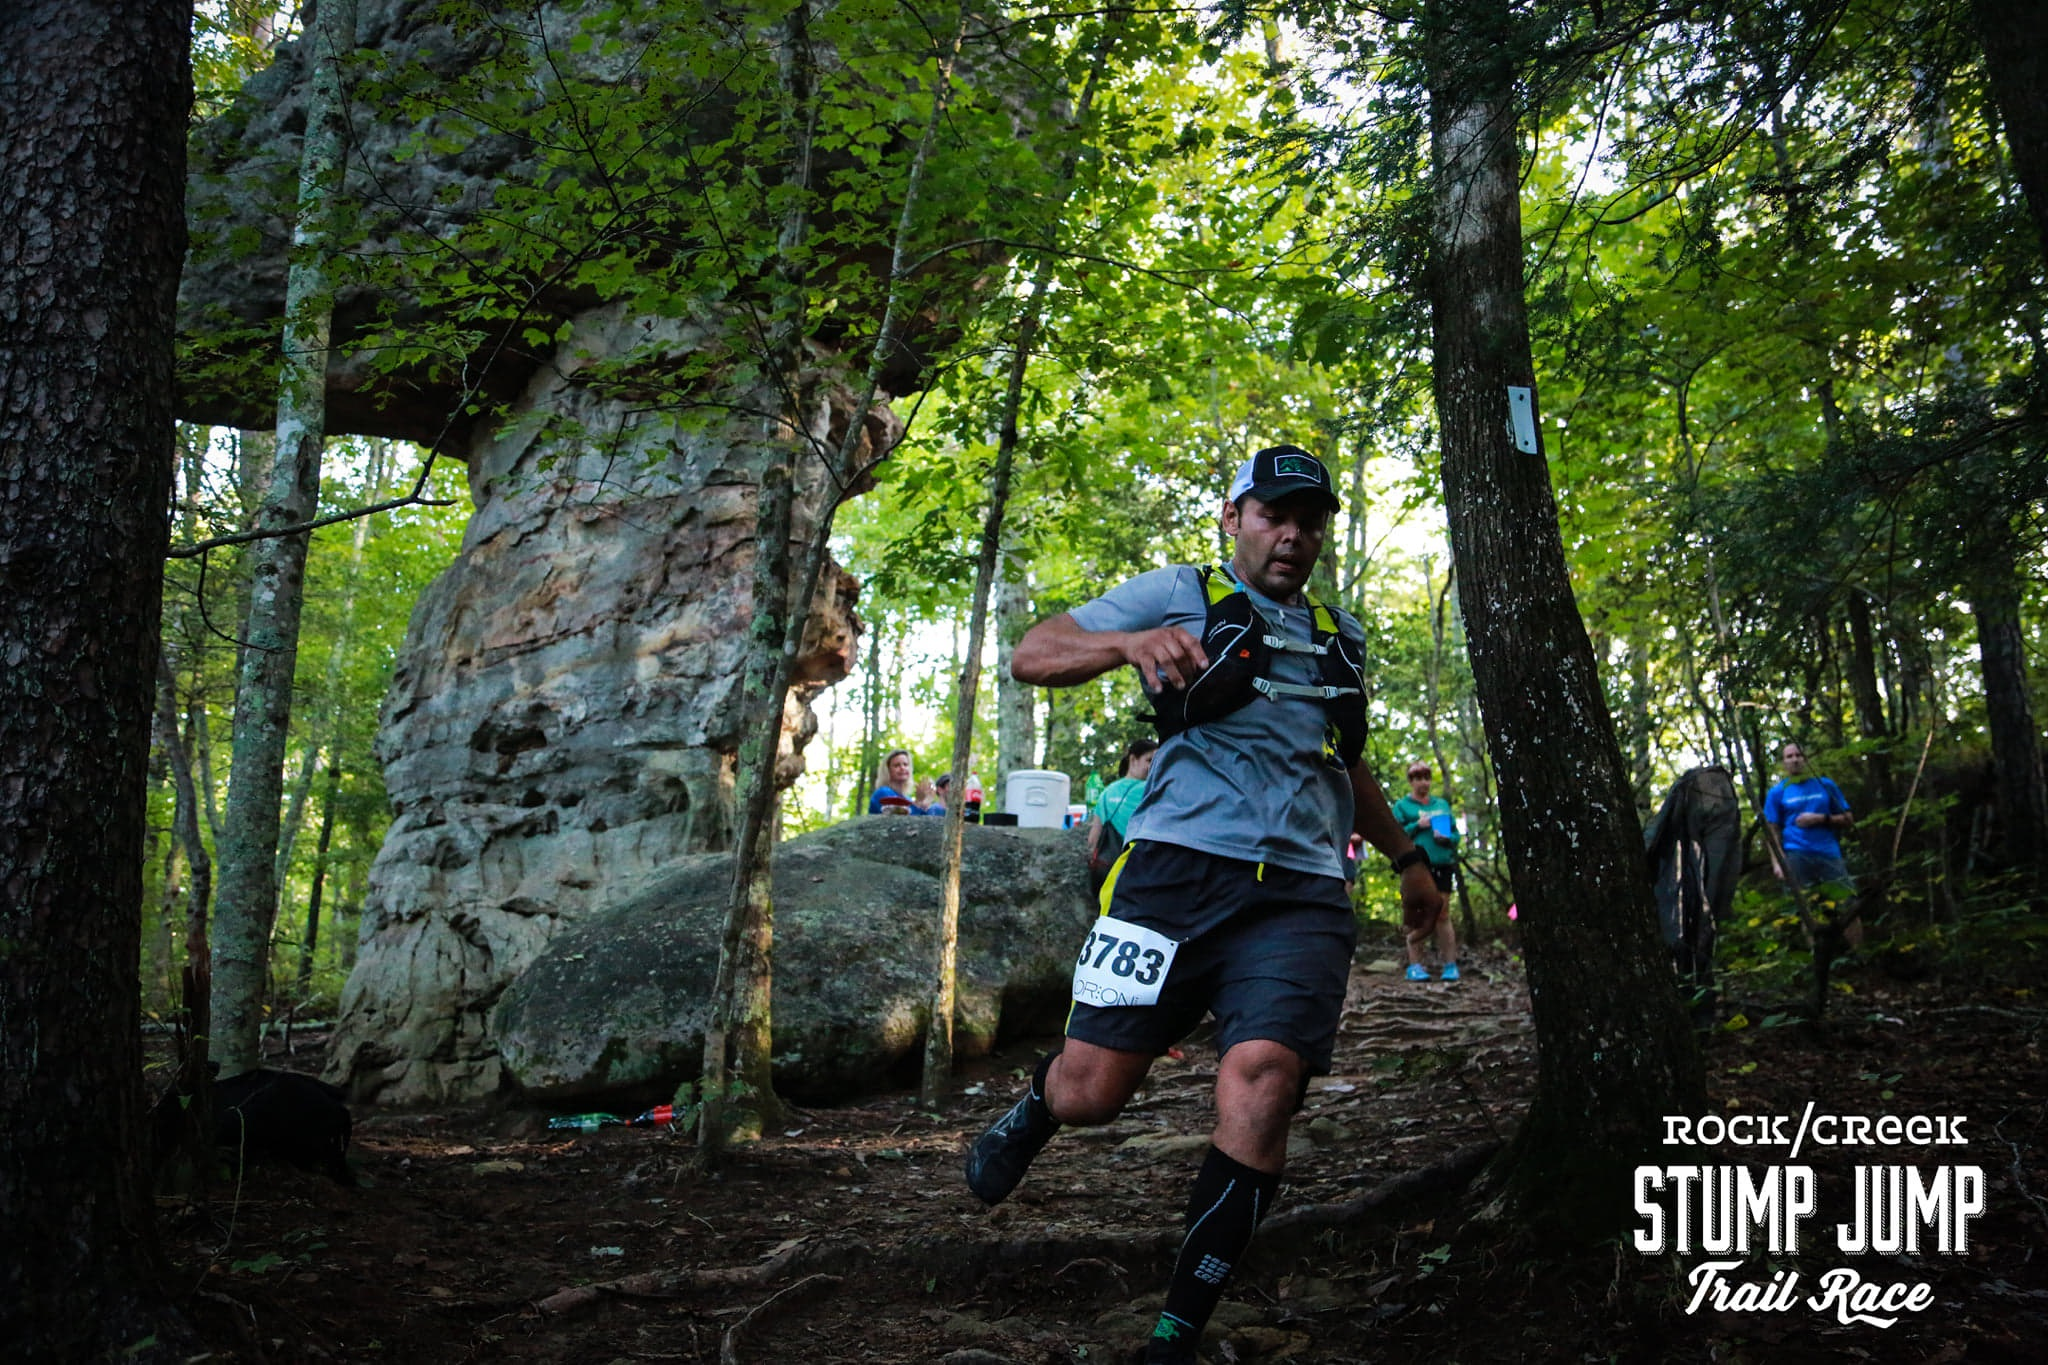 Will Vasquez - Ultra Races: Stump Jump 50k (2011 & 2018), Earth Day 50k 2015, Ice Age 50k (2015 &2016), Dances with Dirt 50k 2015, Grand Island 50k 2018, Tunnel Hill 50 Miler 2018Other Trail Races: North Face Trail Marathon 2011, Tour de Trail Races (Rockford, IL), Blue Mound Trail Races, Dances with Dirt Half MarathonRoad Races: St. Louis Half, Marathon, Whitewater Half Marathon, Elgin Fox Trot 10 Miler, and many 10k and 5k racesRace Volunteering: Arbor Ridge Trail Race 2018When Not Running: Hiking, camping and any outdoor activity. Exploring new roads on my motorcycle. Spending time with friends and family.